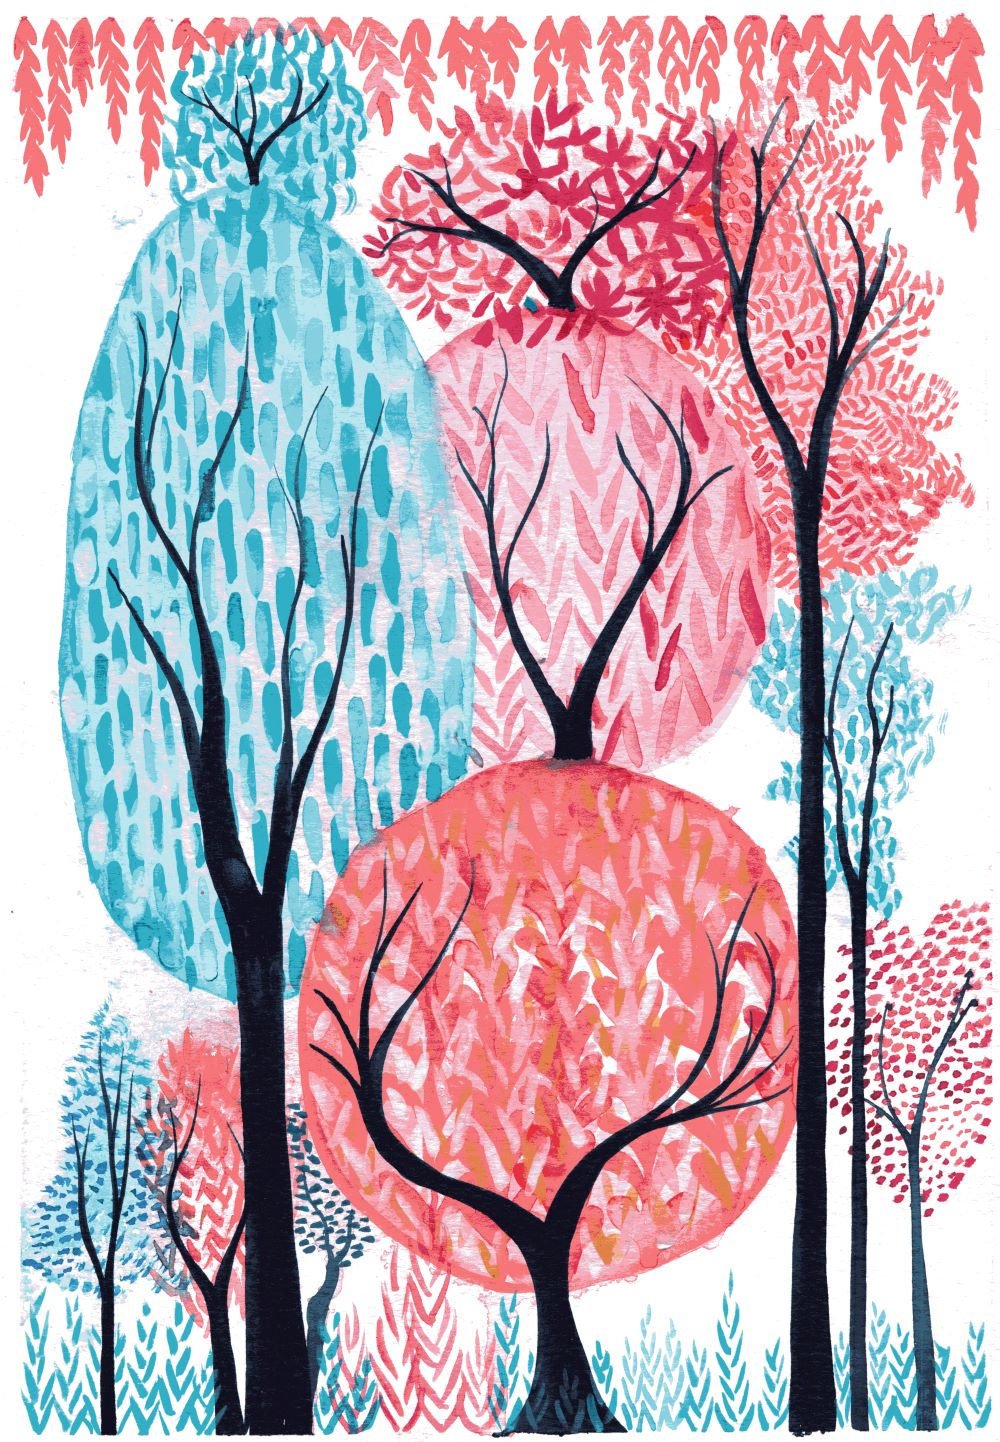 Watercolour painting of coral and turquoise trees by Kirsten Bailey